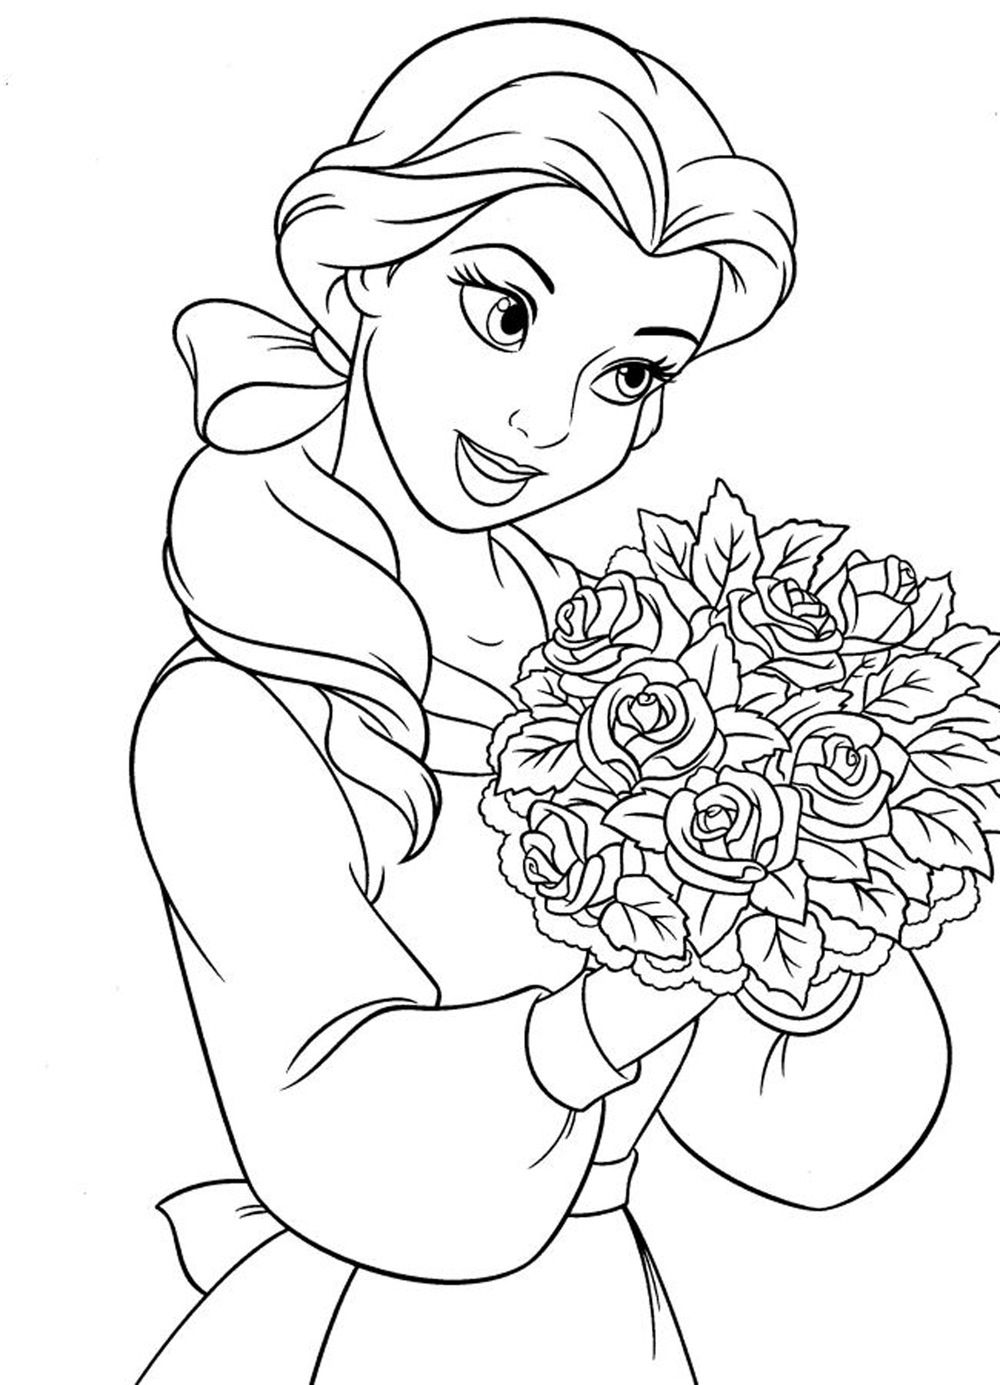 girls coloring coloring pages for girls best coloring pages for kids girls coloring